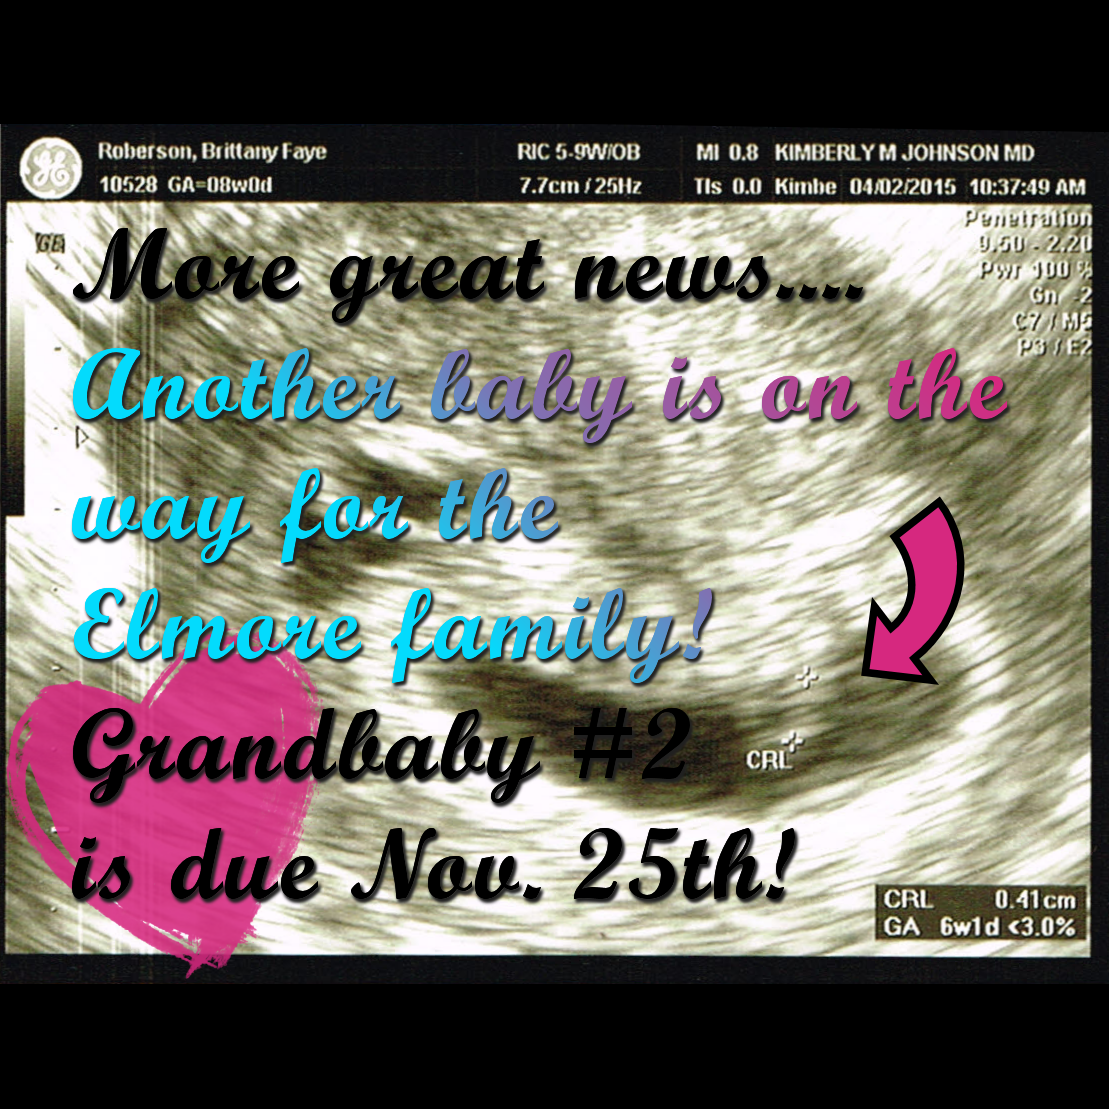 9566a2d3d21 My Easter gift from my oldest son was the news that he is making me a  grandma as well! Grandbaby  2 is due November 25...two grandbabies in one  year!